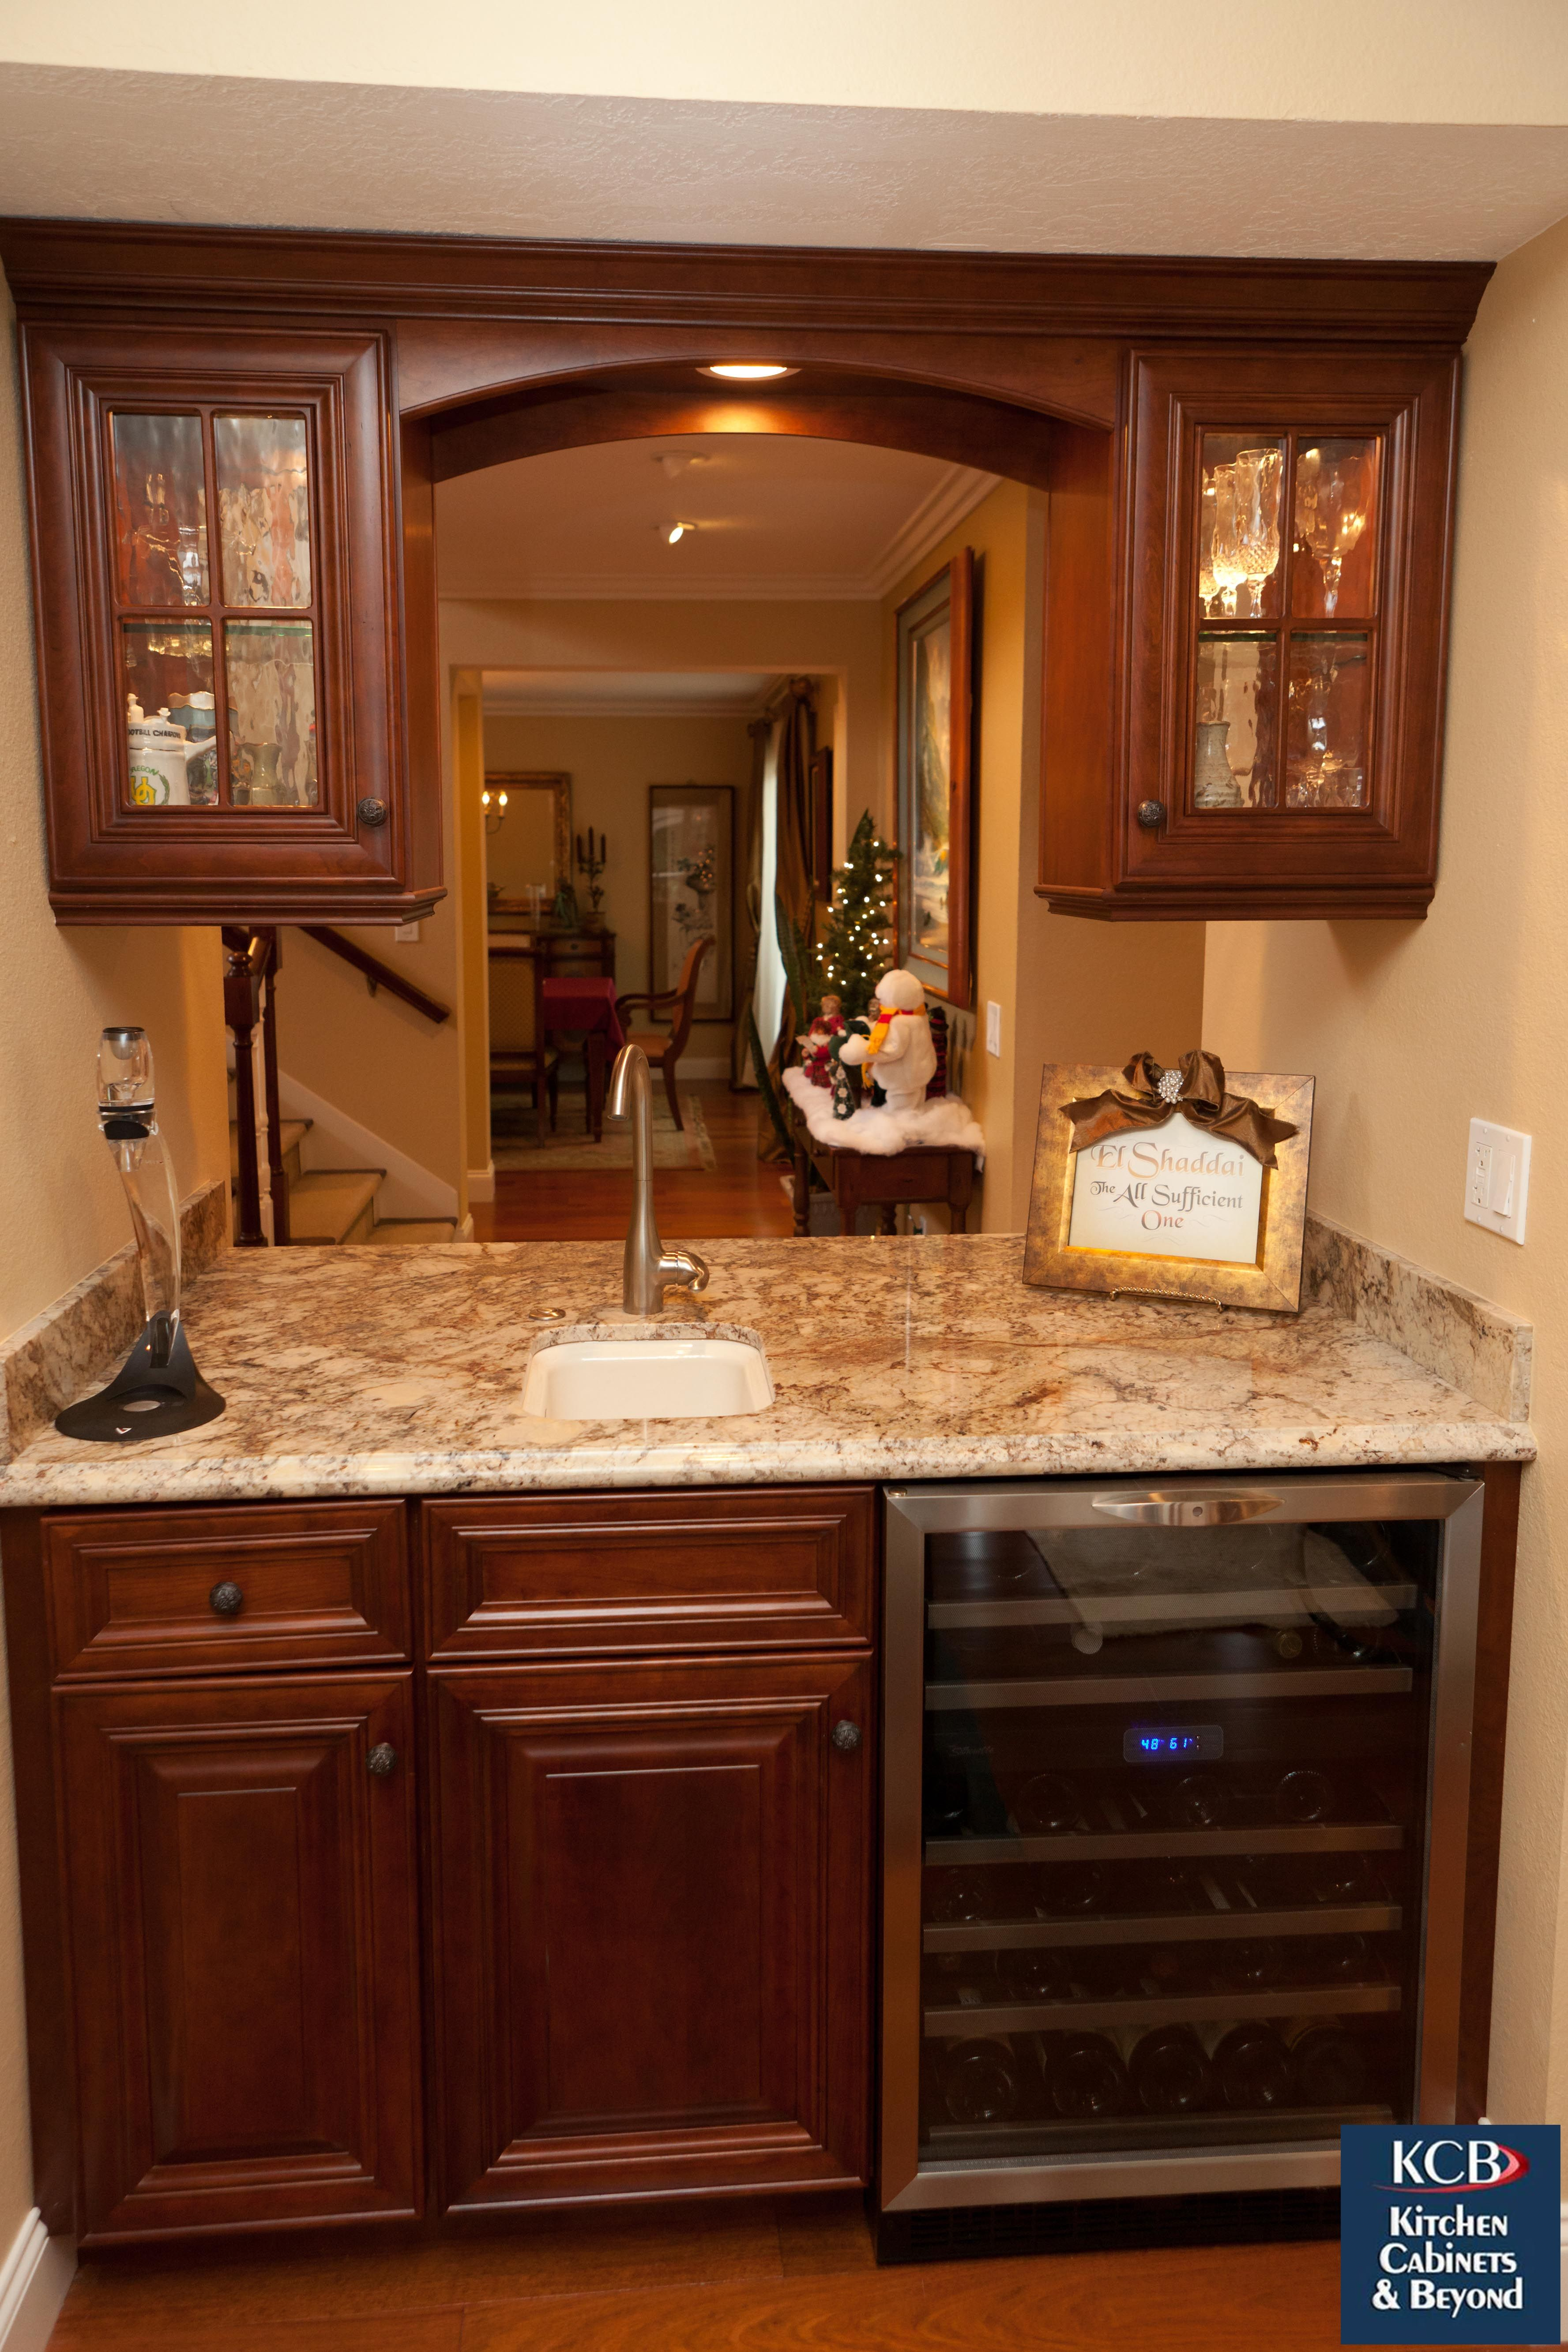 Built In Bar With Wine Refrigerator Marble Counter Top Built In Sink Cherry Cabinets With Glass Homedesign Kitchen Remodel Built In Bar Kitchen Cabinets